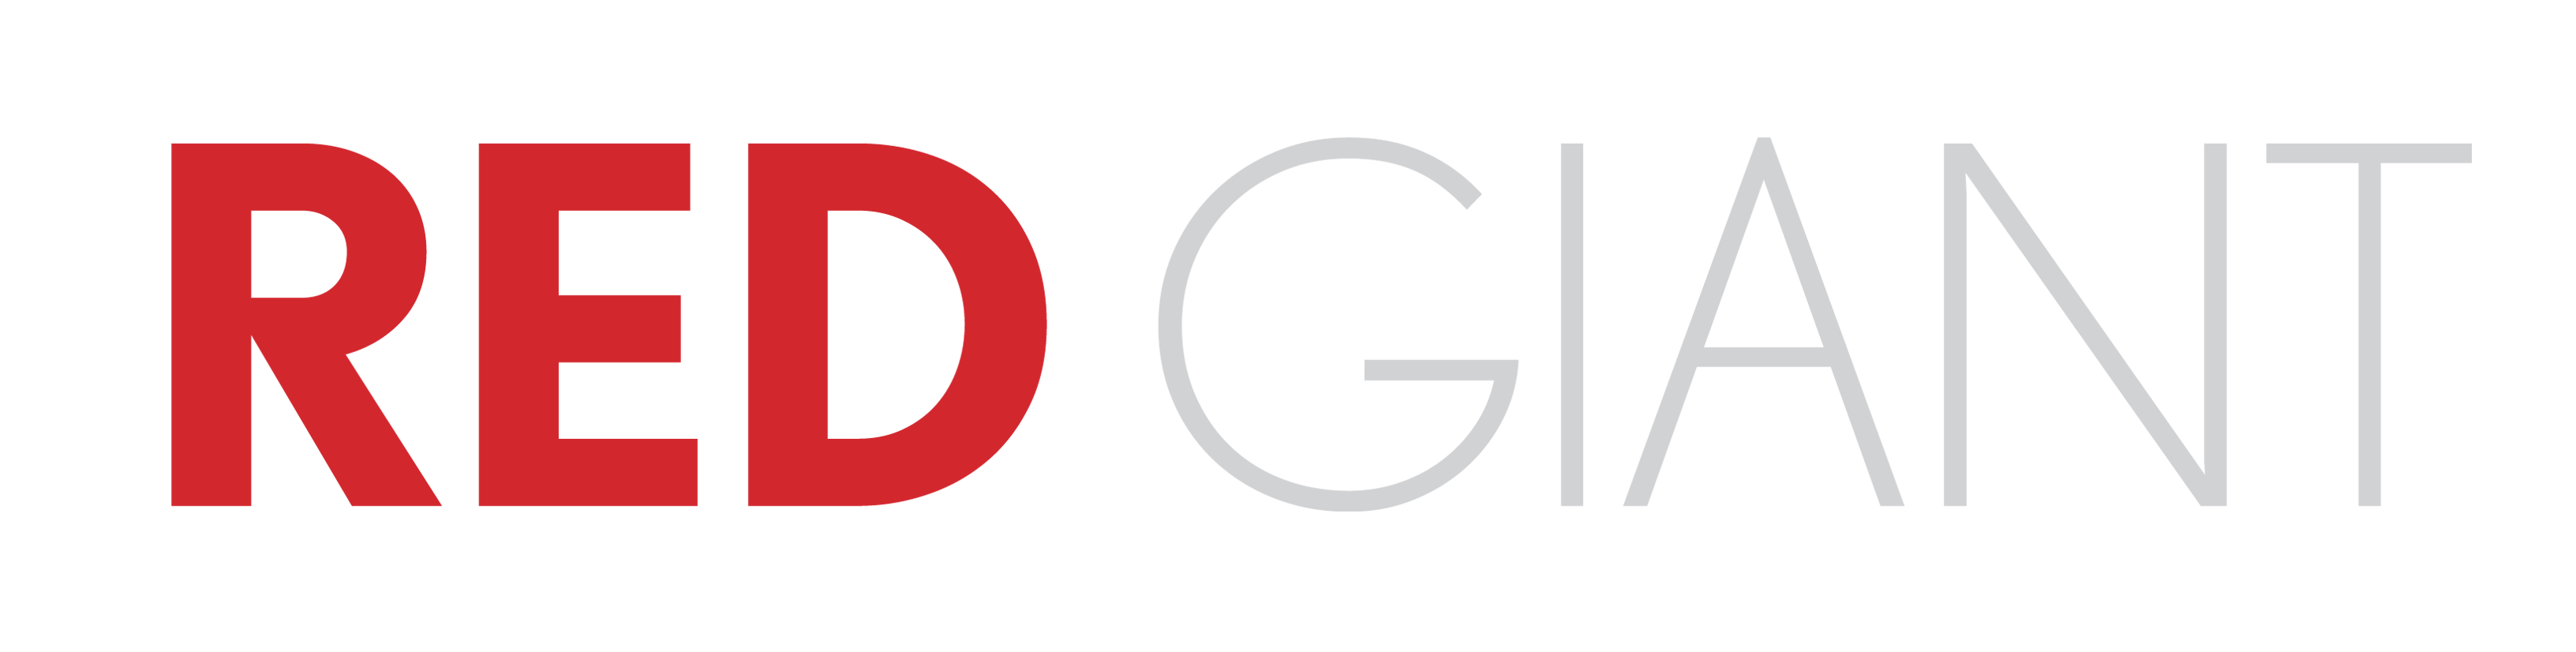 Red Giant logo